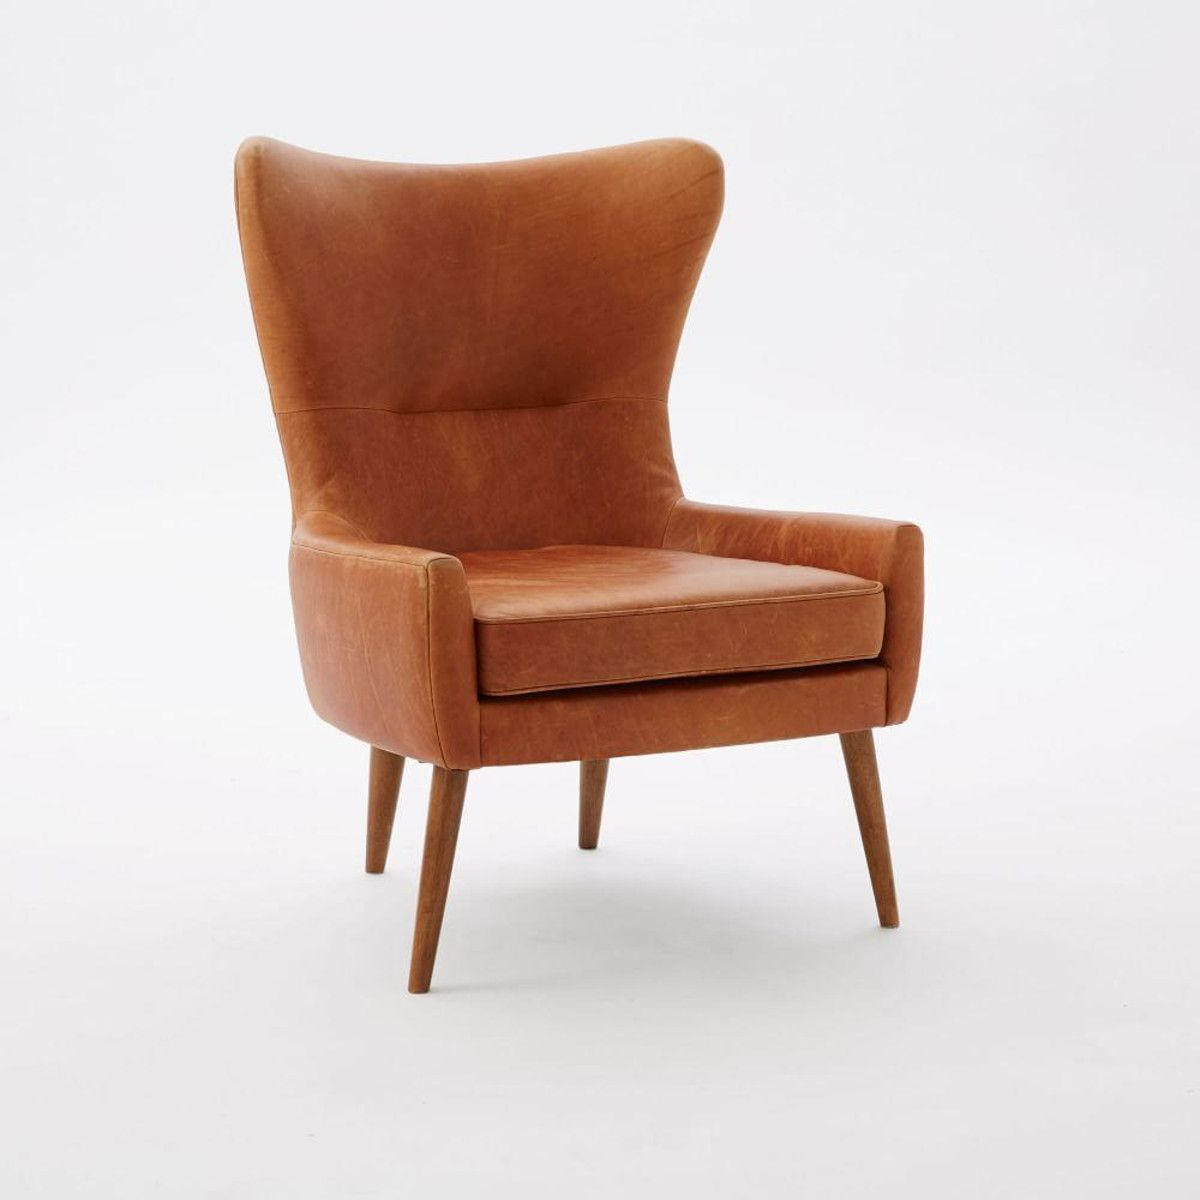 Erik leather wing chair decor pinterest armchairs for Wingback chair